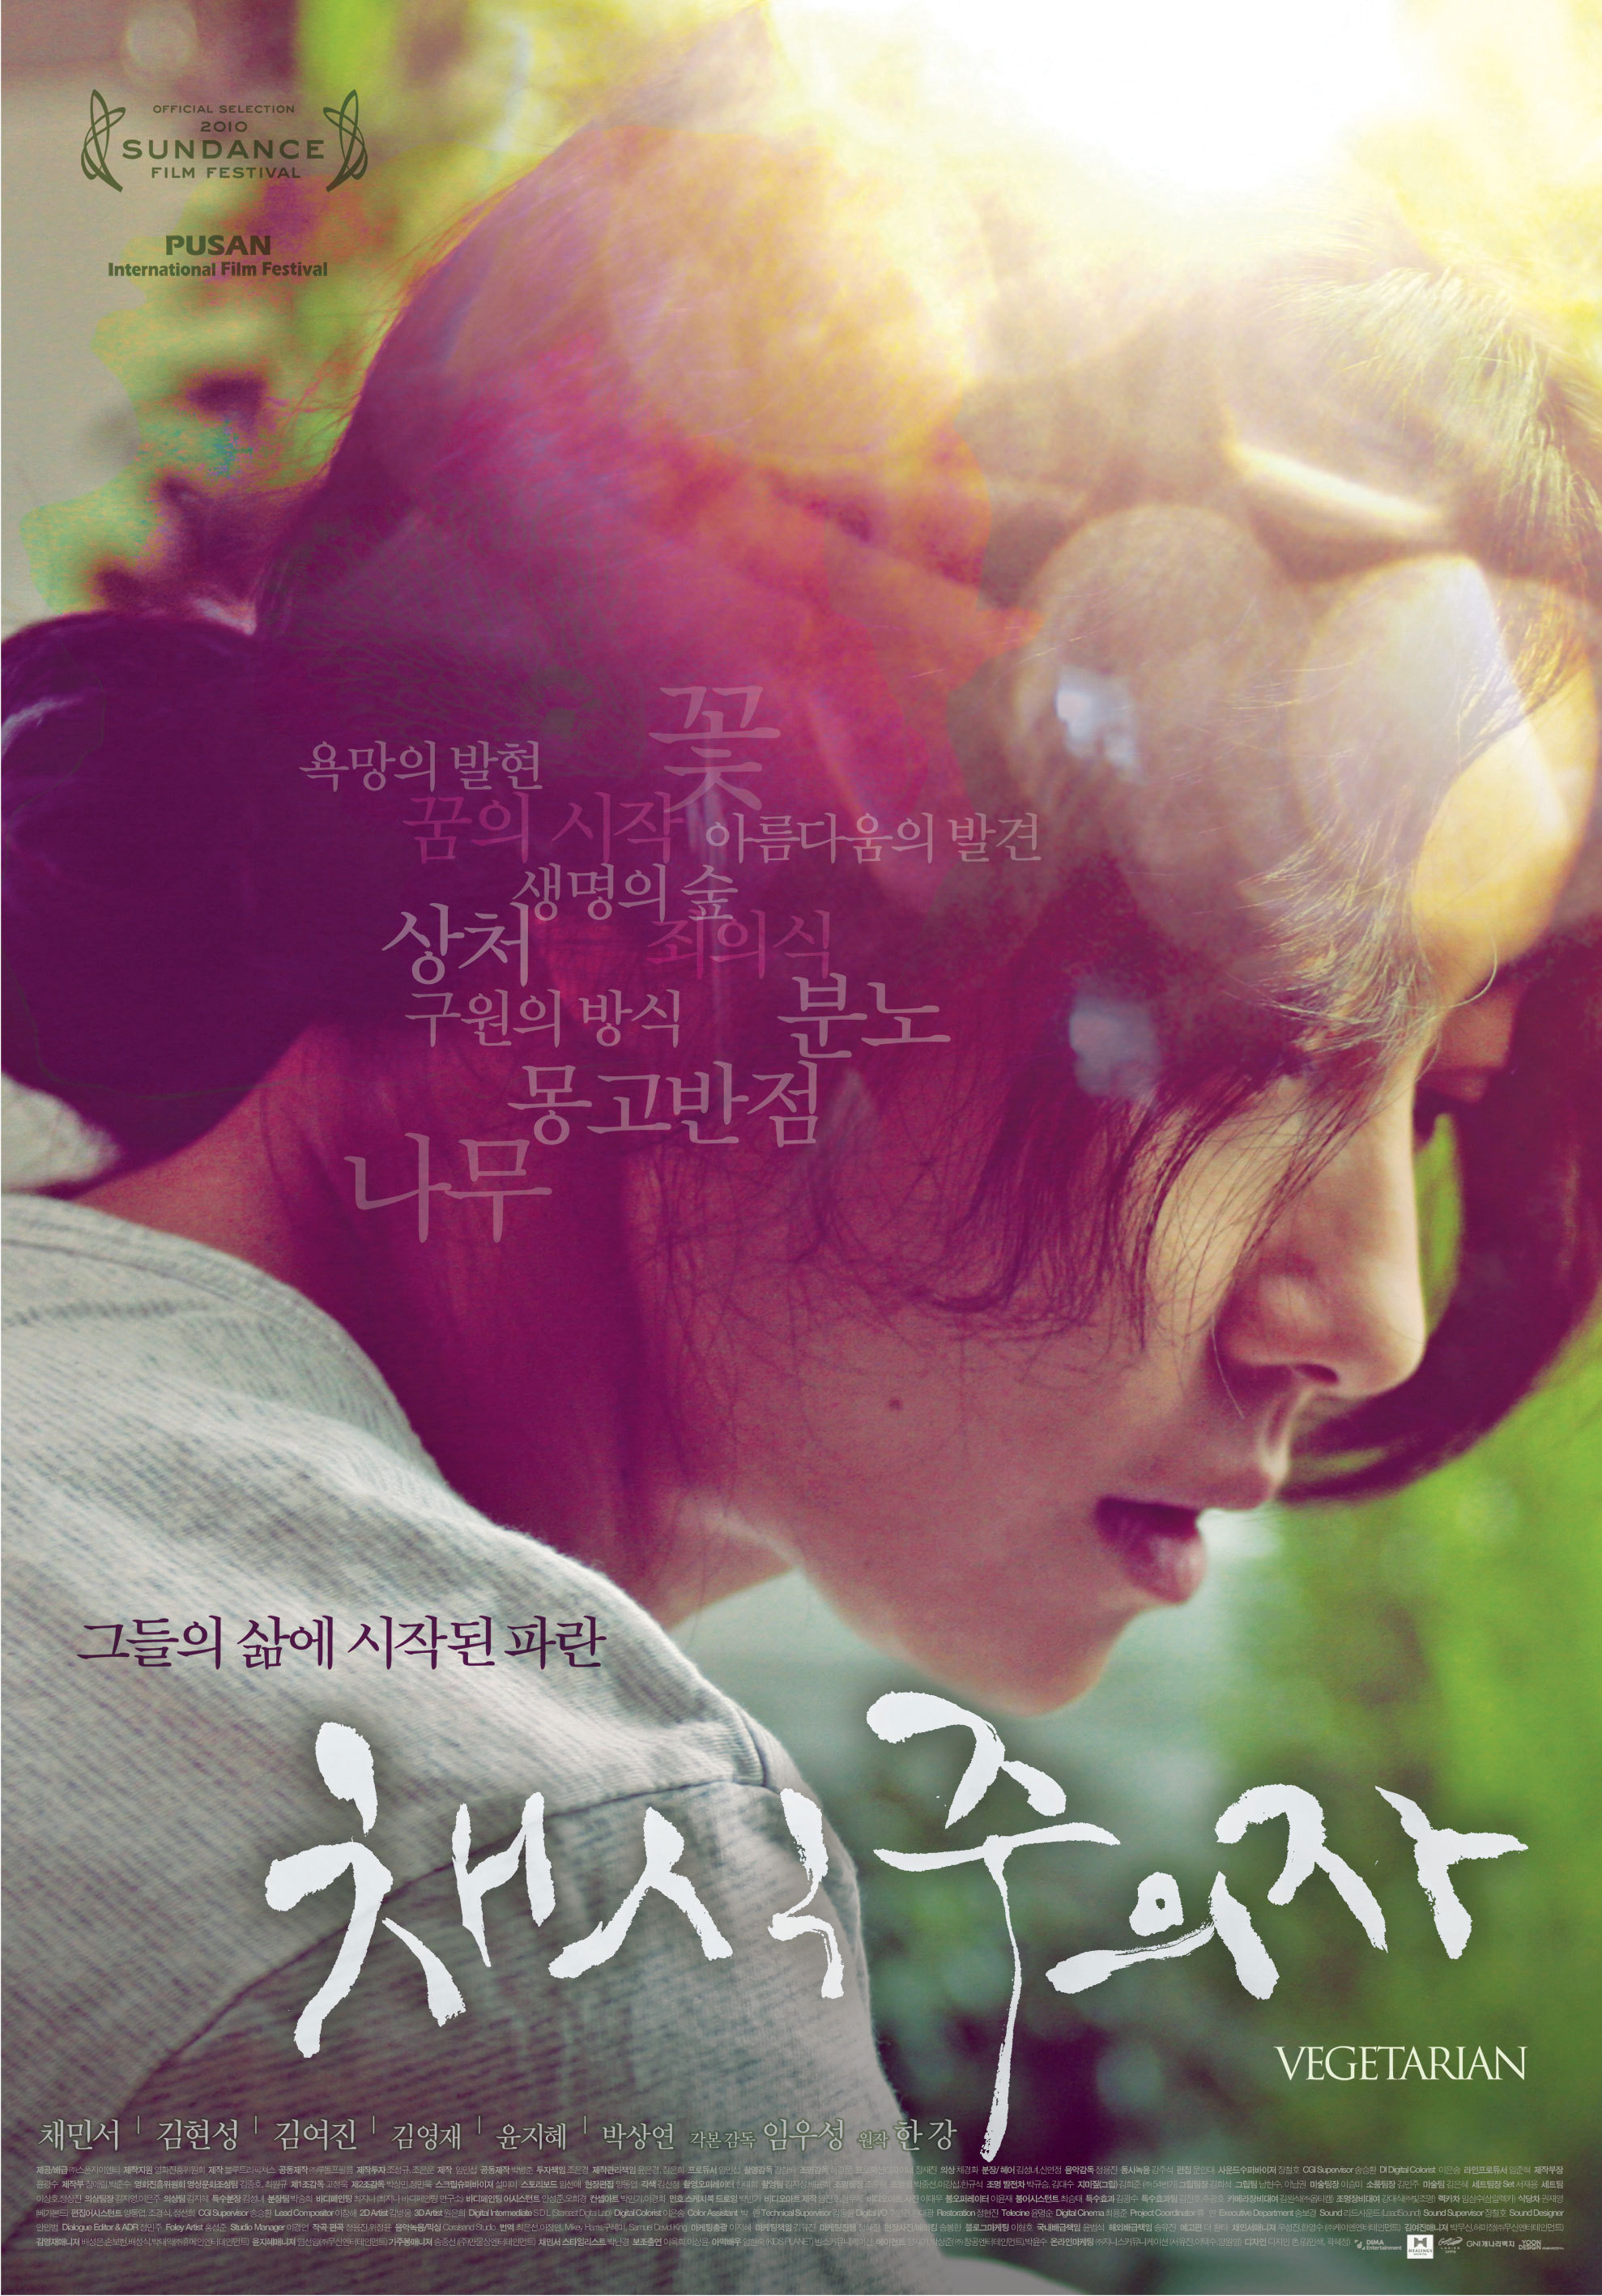 Vegetarian (2009-South Korea)-p1.jpg